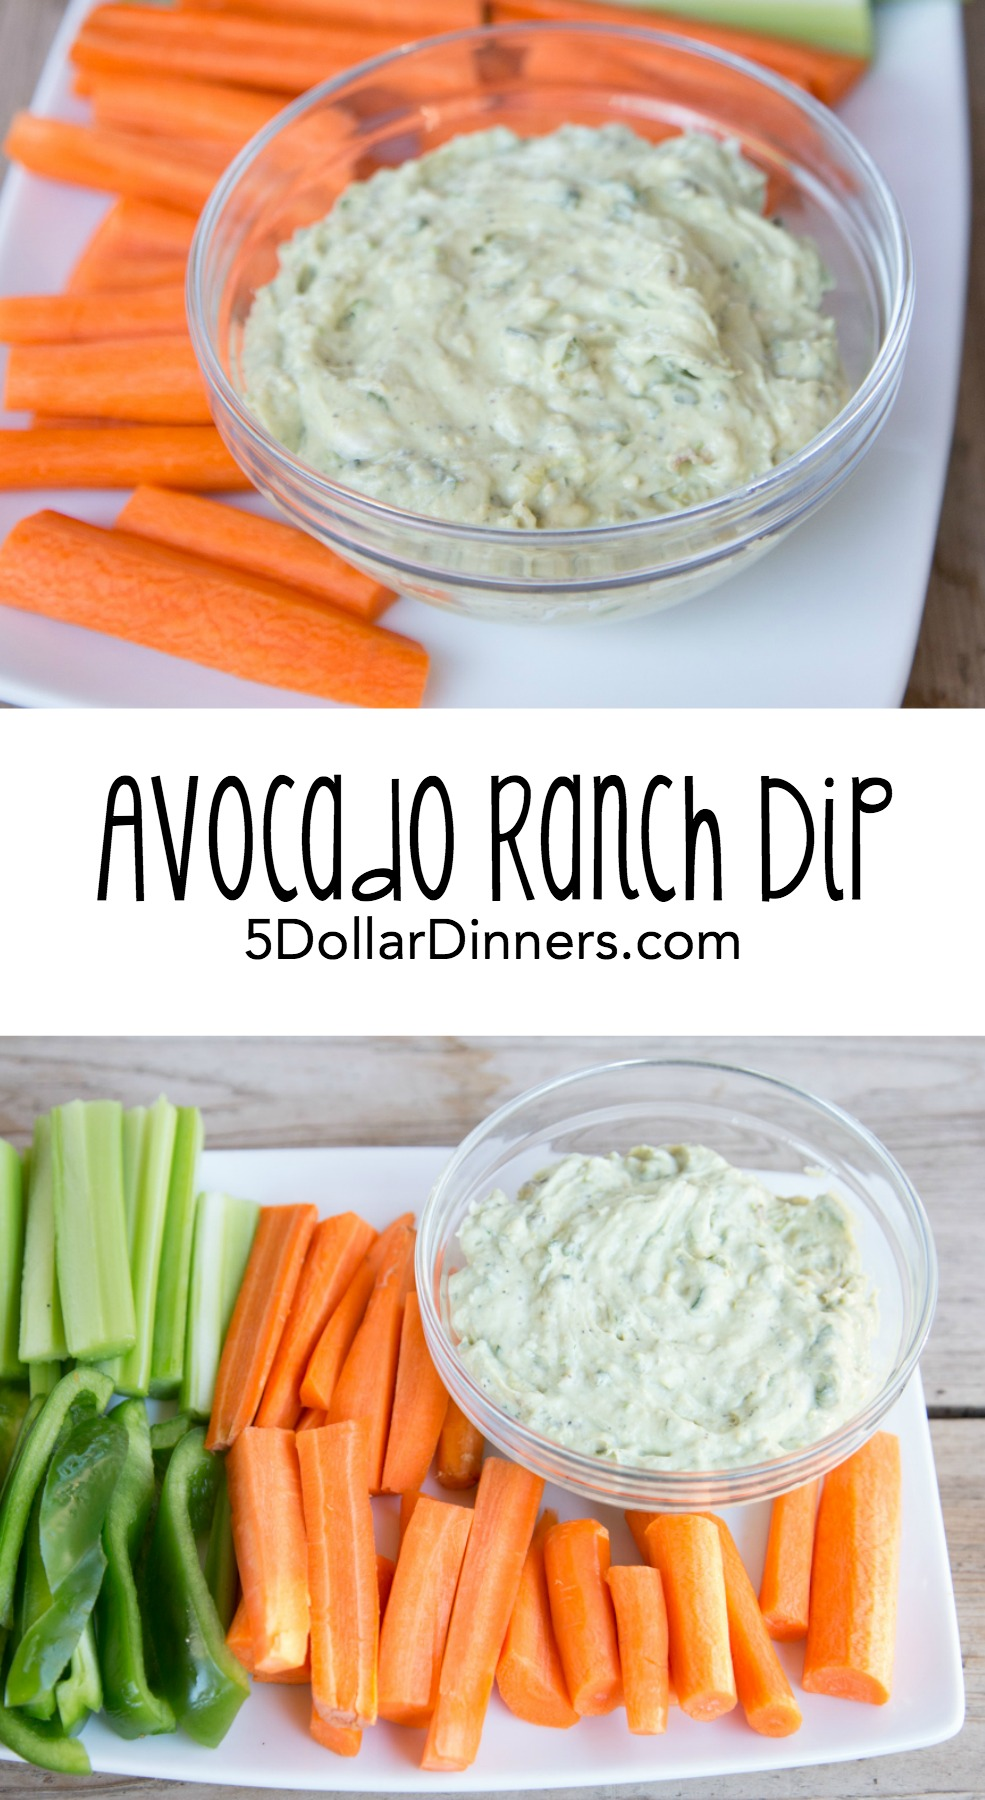 Avocado Ranch Dip with Veggies 5DollarDinners.com